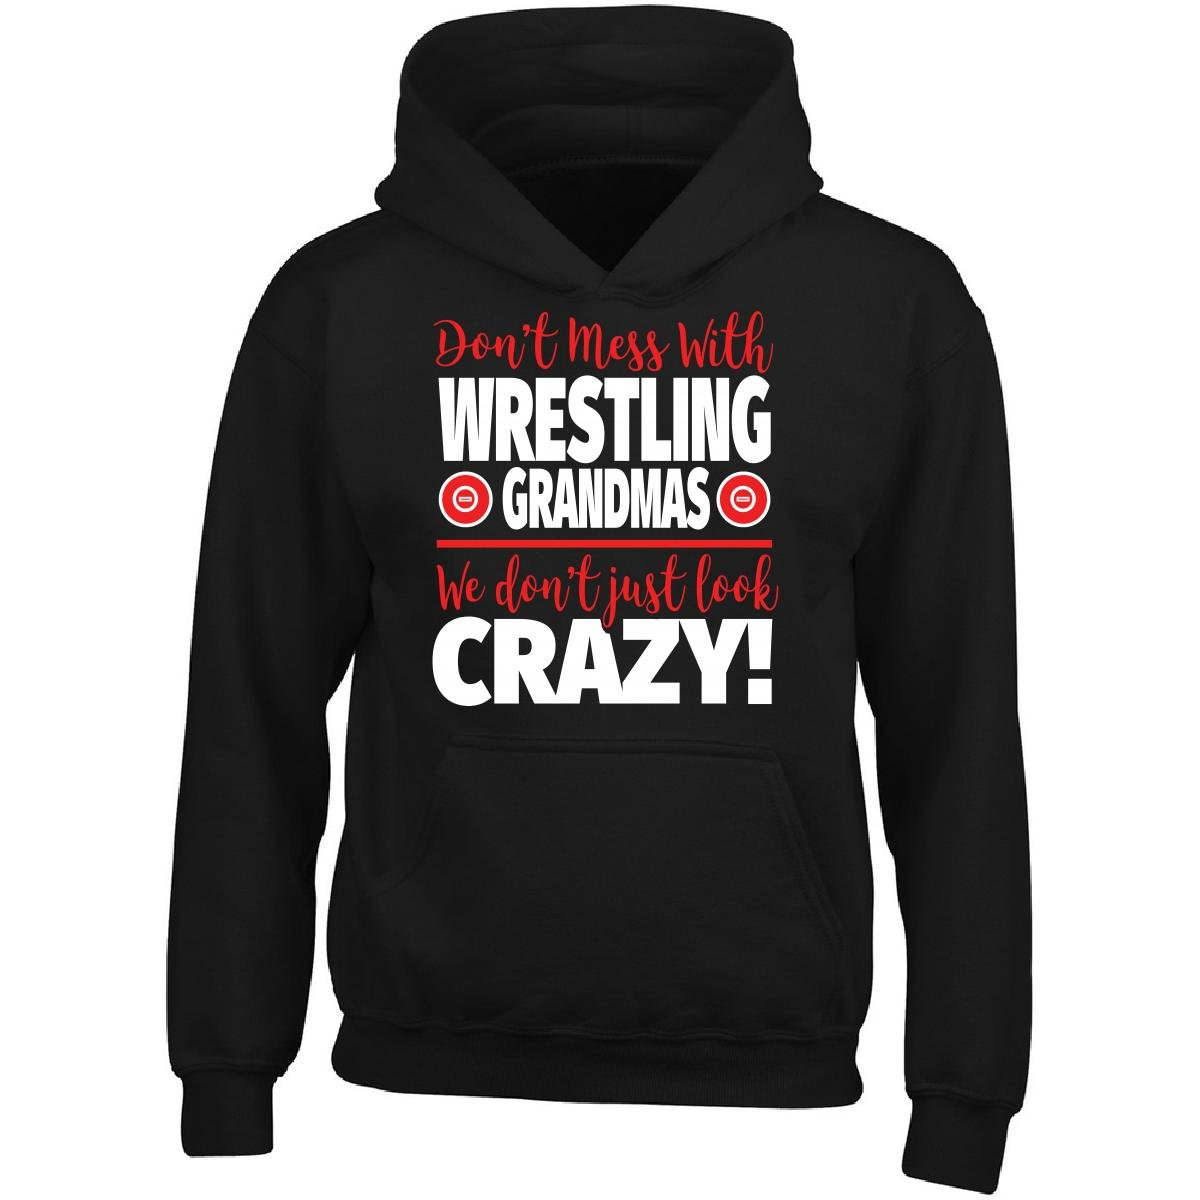 Eternally Gifted Crazy Wrestling Family - Don't Mess With Wrestling Grandmas - Adult Hoodie by Eternally Gifted